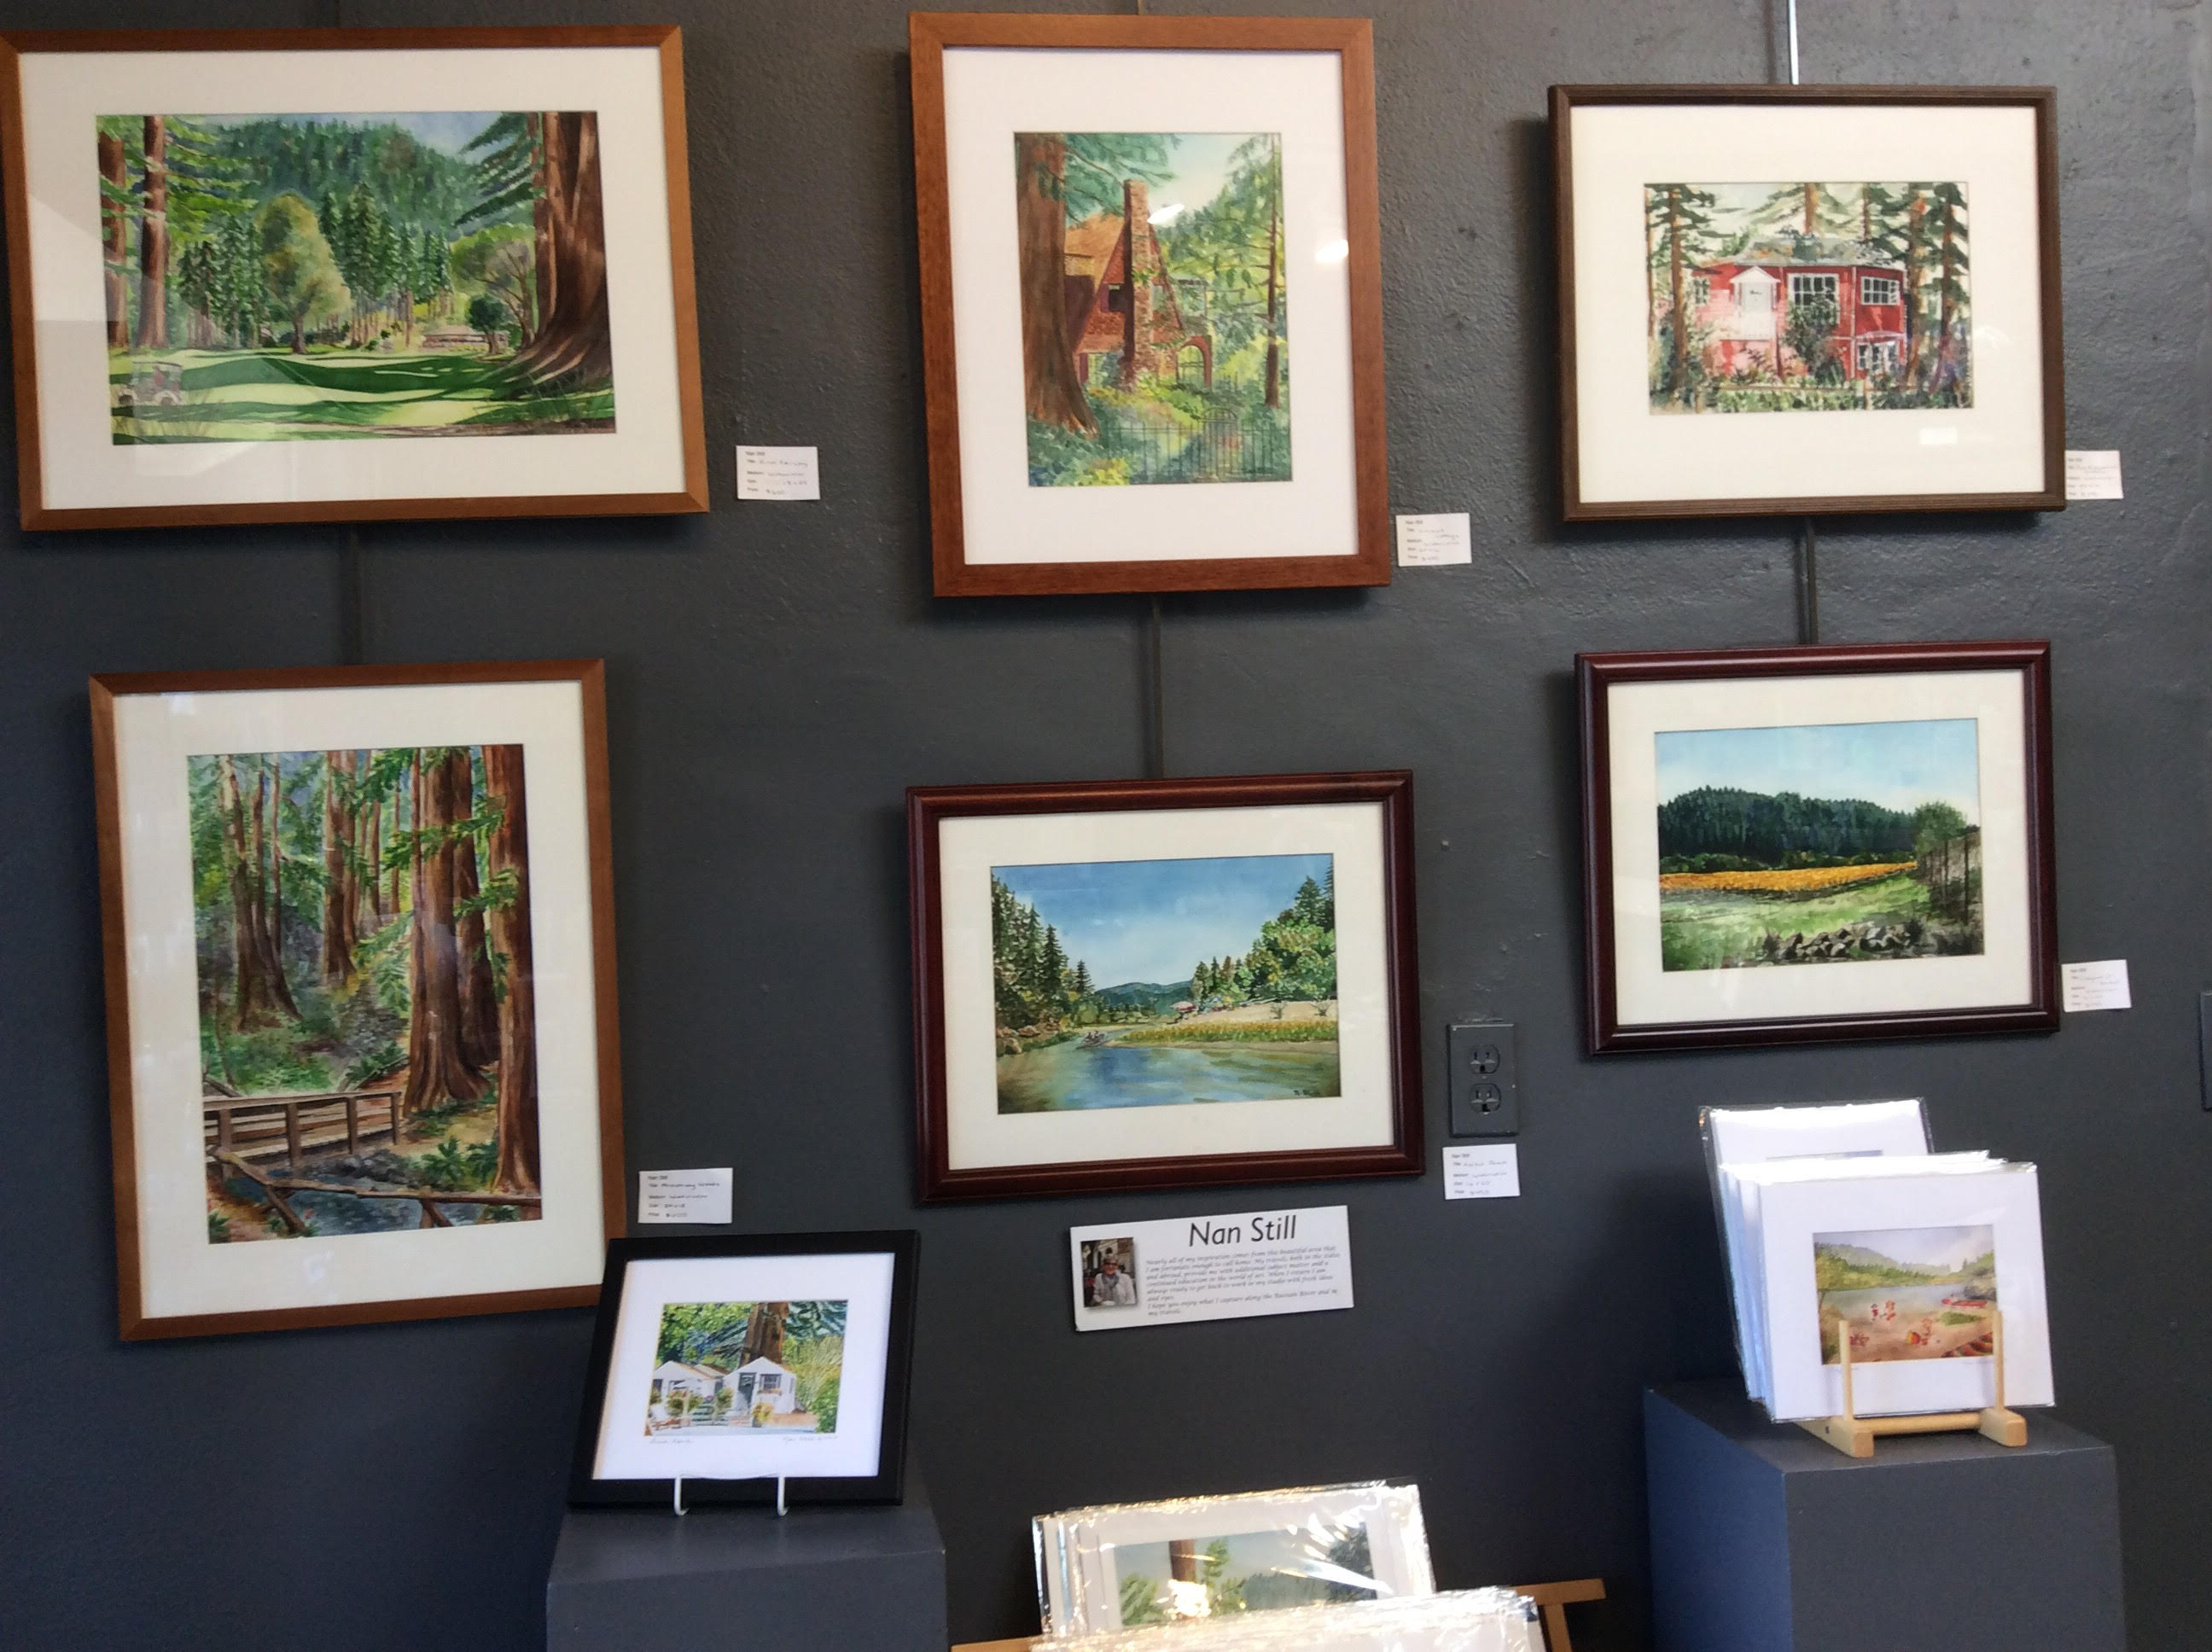 Russian River Art Gallery, Guerneville, California